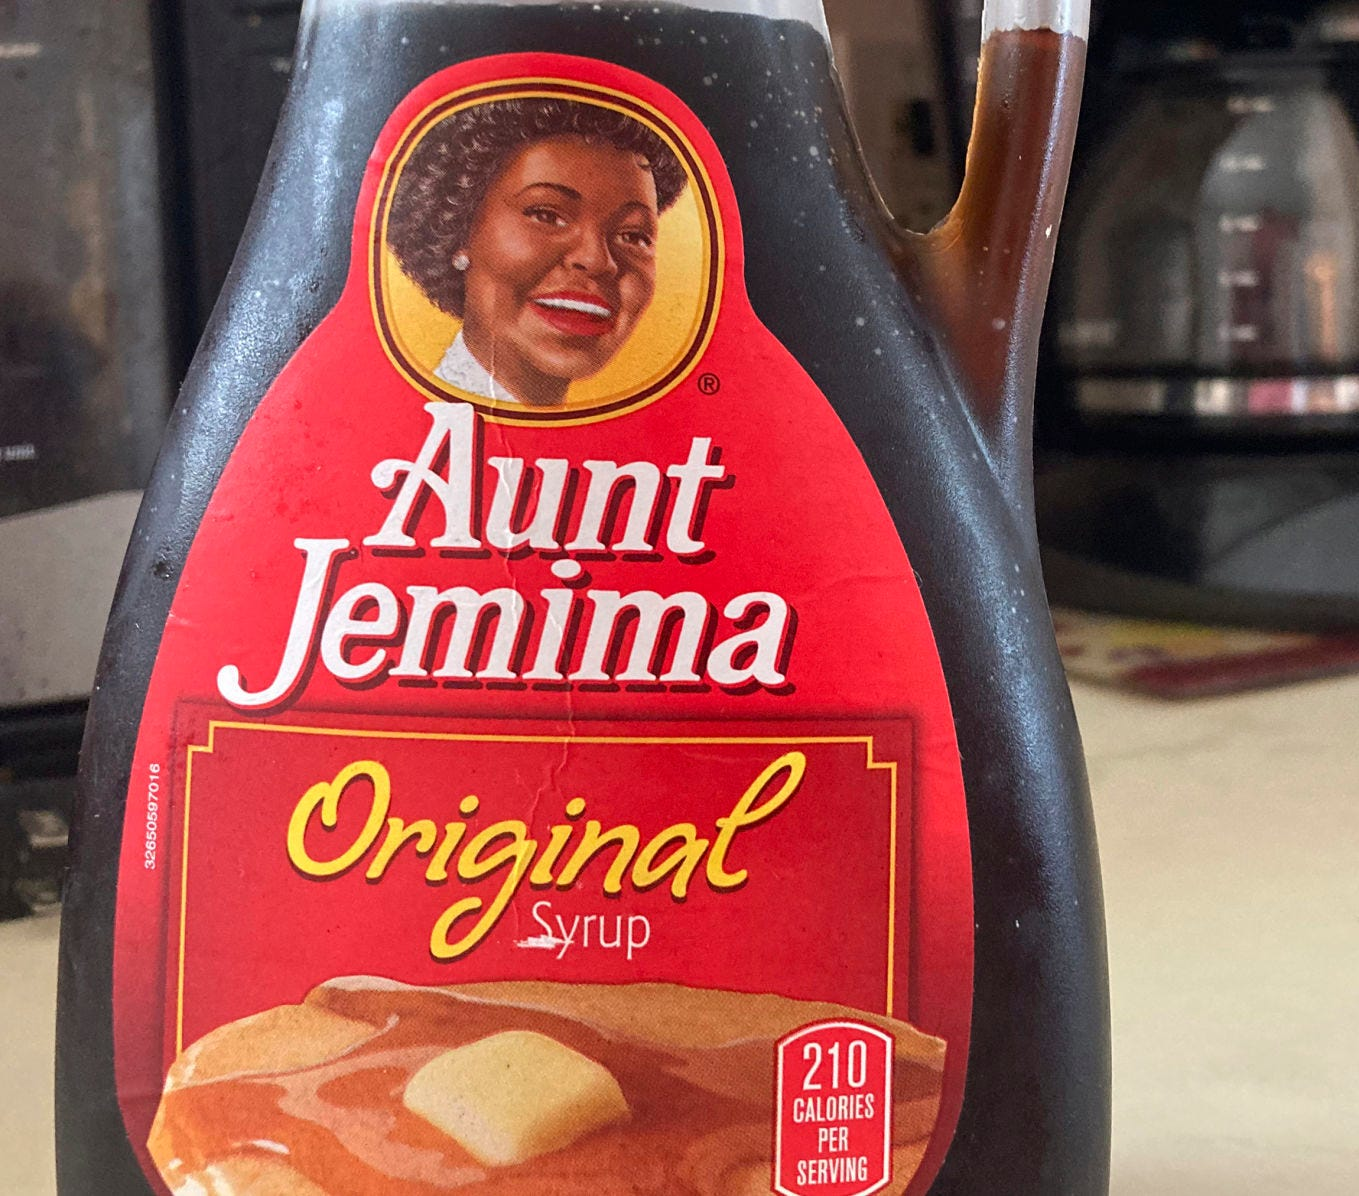 Is it time to pull the plug on the Aunt Jemima brand?